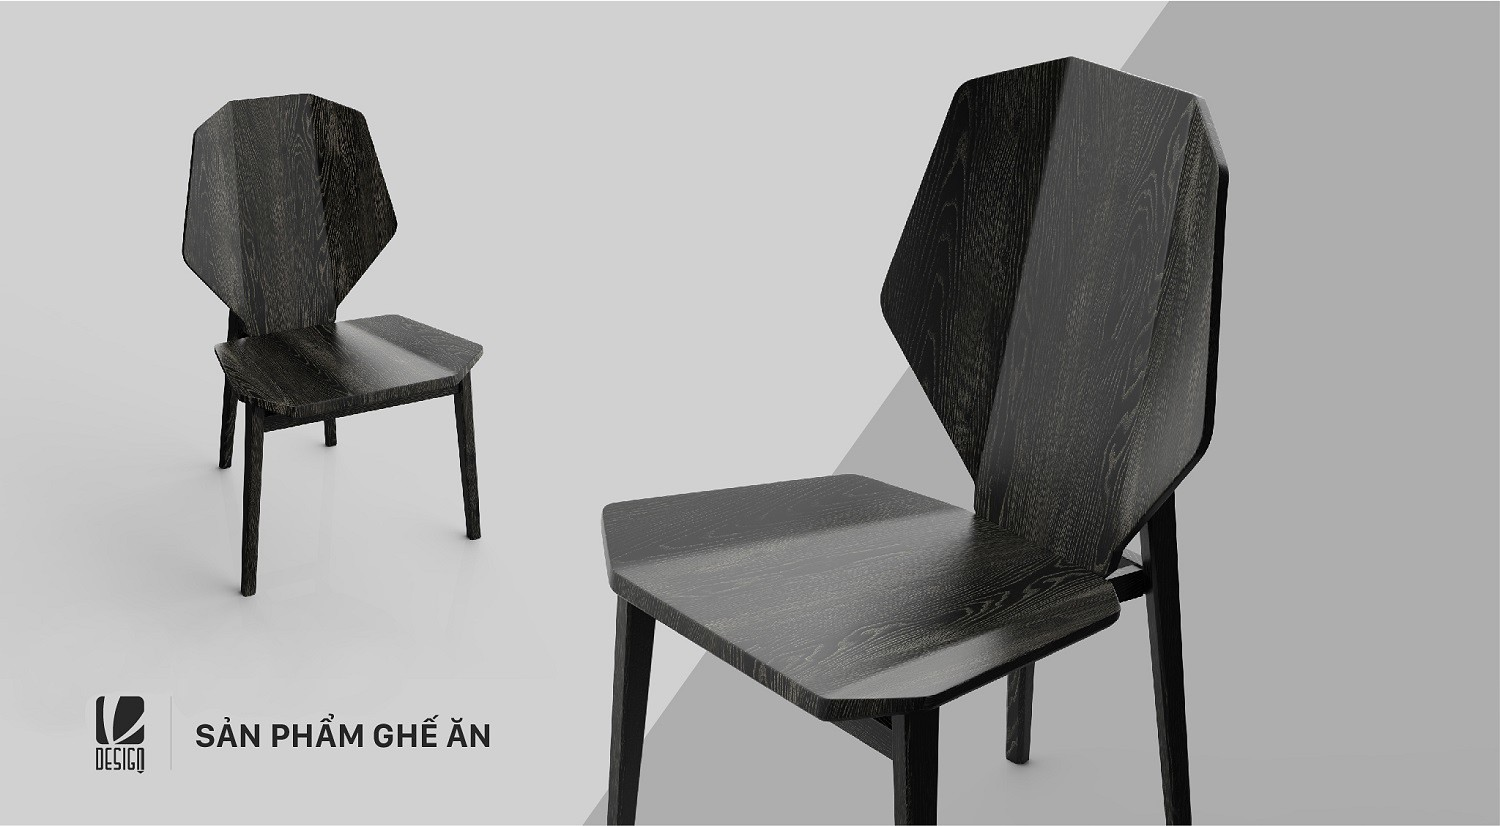 Dining chairs design - Vdesign R&D